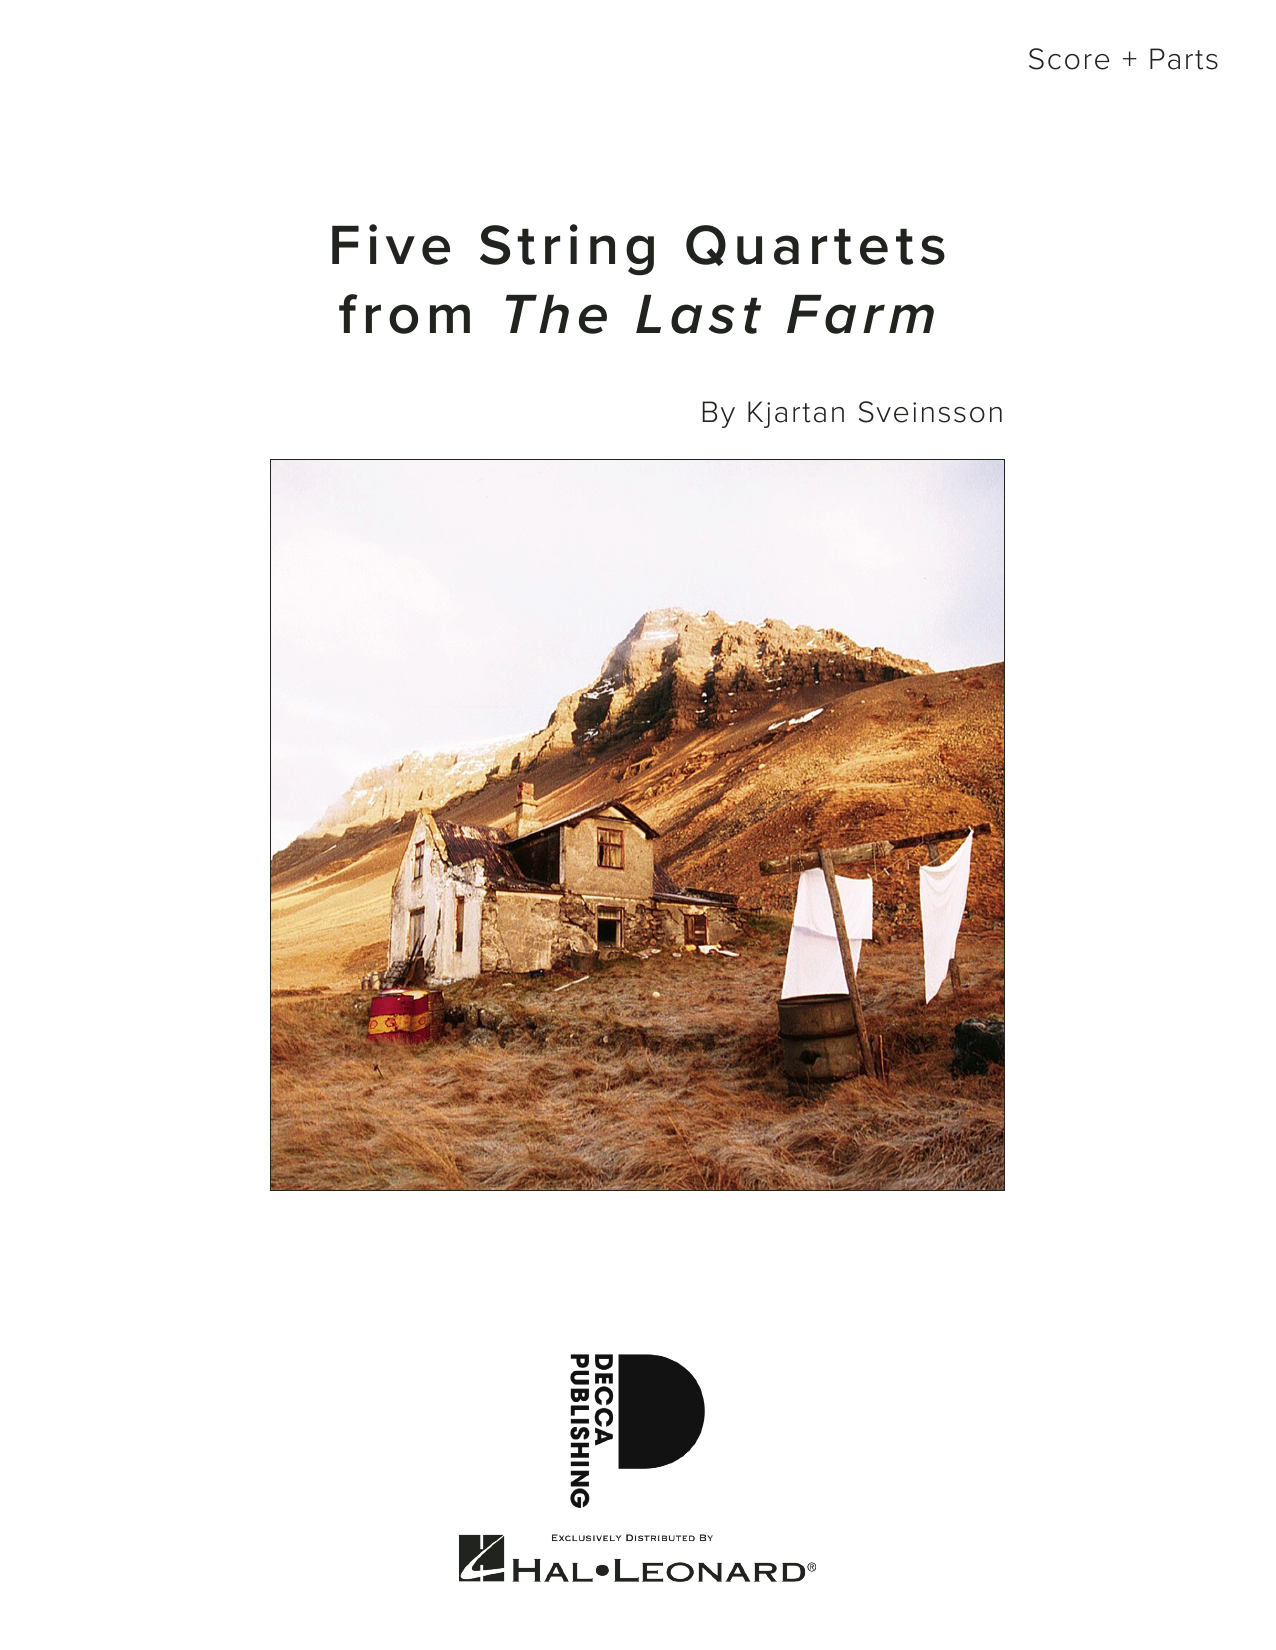 Download Kjartan Sveinsson 'Five String Quartets from The Last Farm - Full Score' Digital Sheet Music Notes & Chords and start playing in minutes